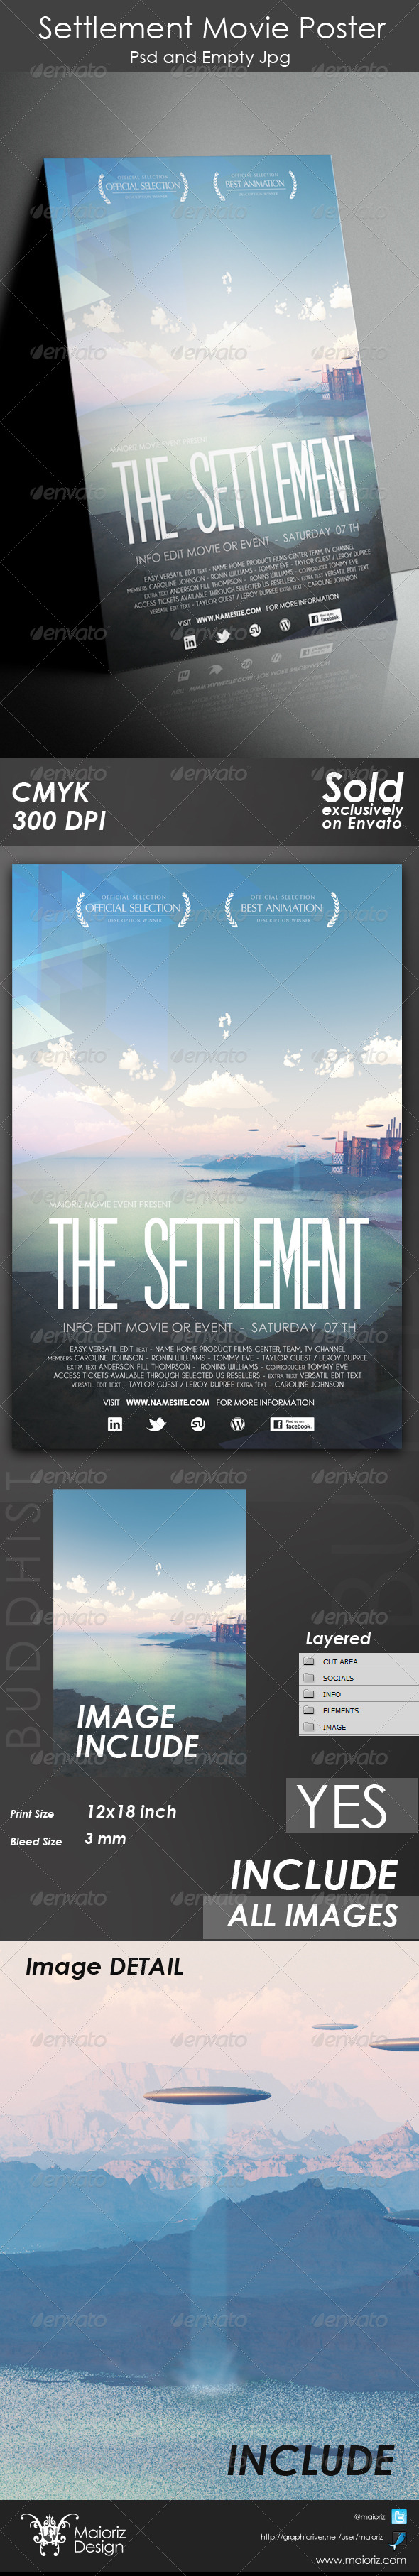 GraphicRiver Settlement Movie Poster 4608479